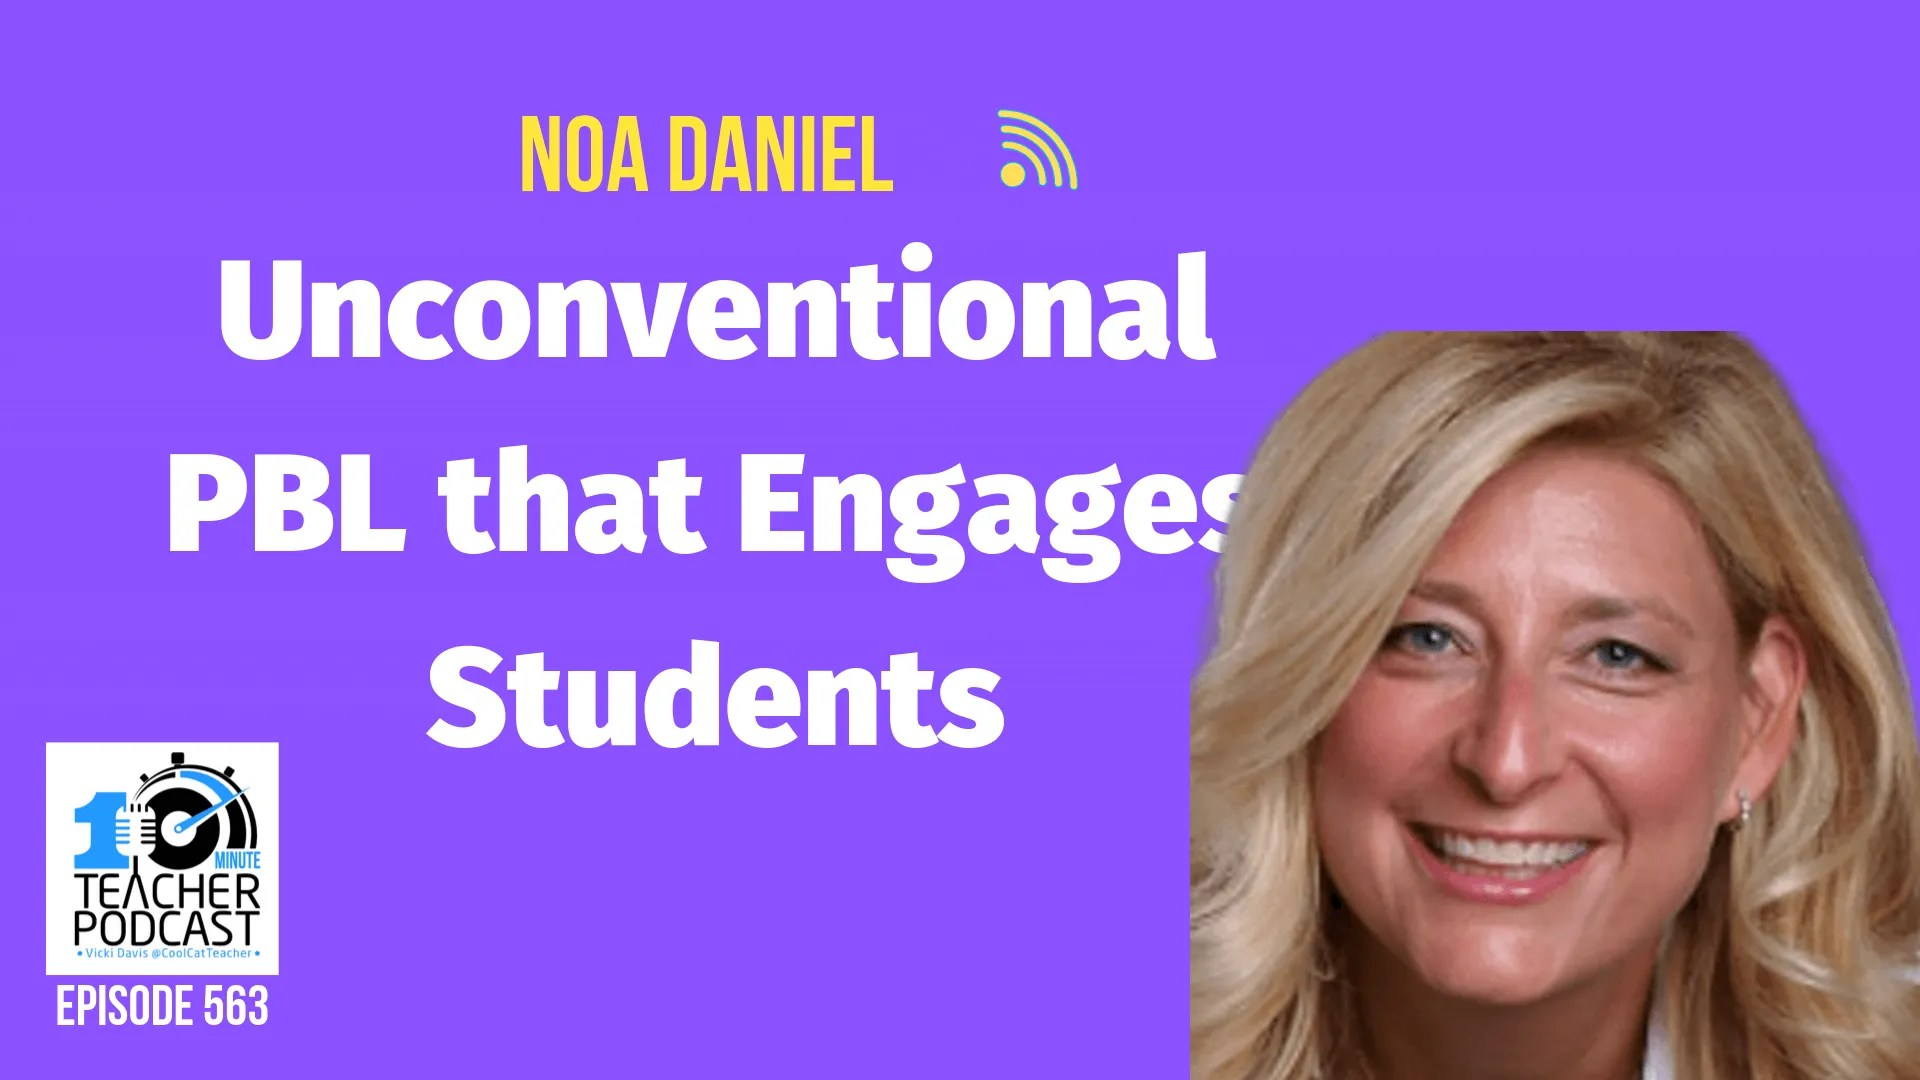 Unconventional Project Based Learning that Engages Learners @coolcatteacher